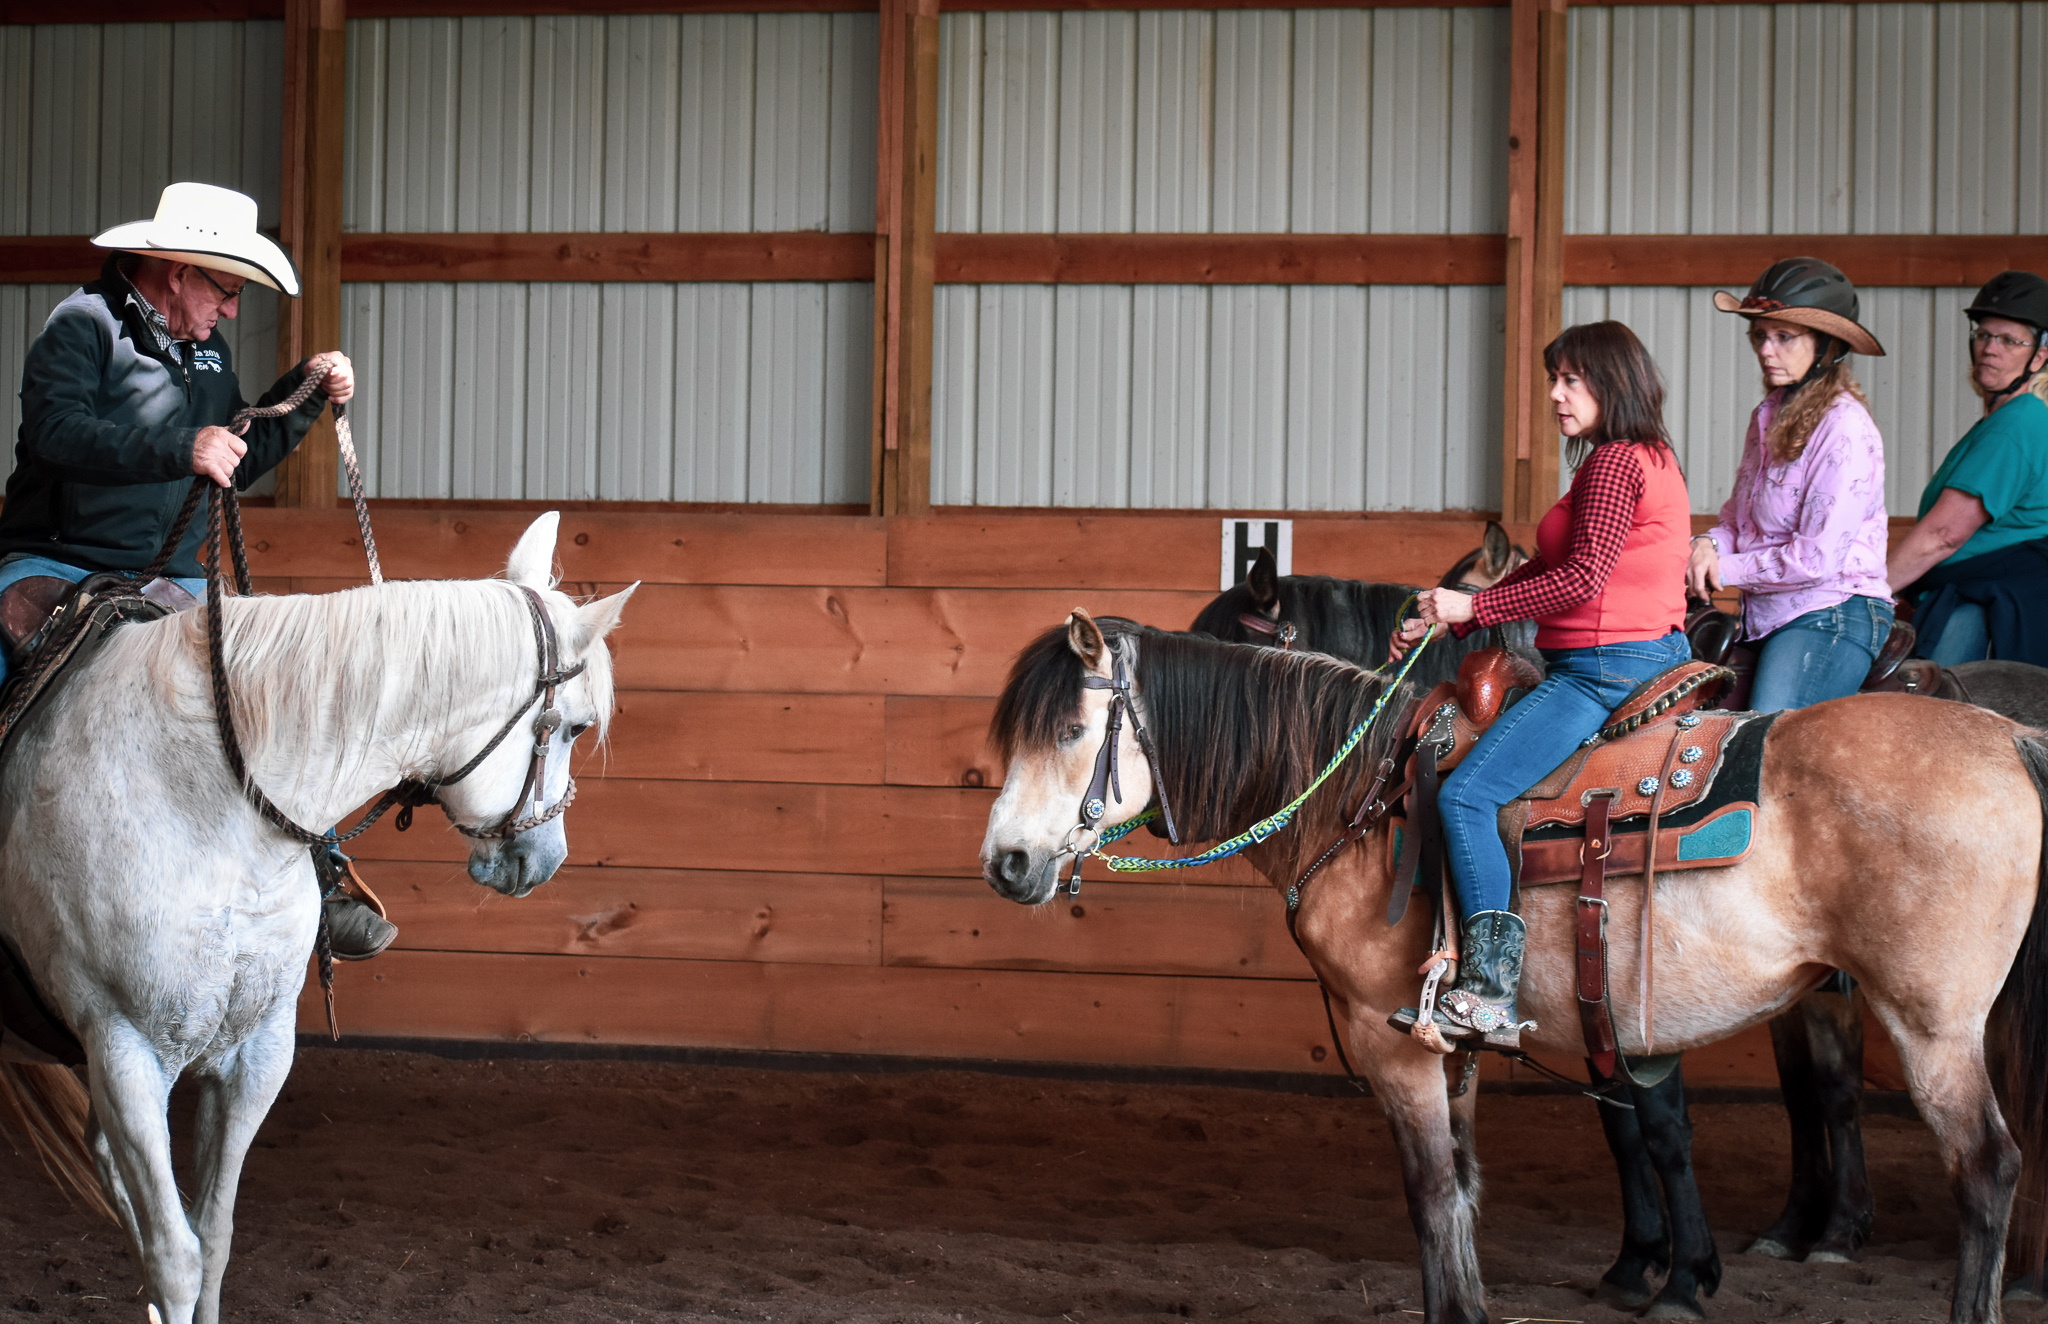 Horse Trainers near Madison Wisconsin - Wisconsin Horse Trainers - Natural Horsemanship Trainers - M